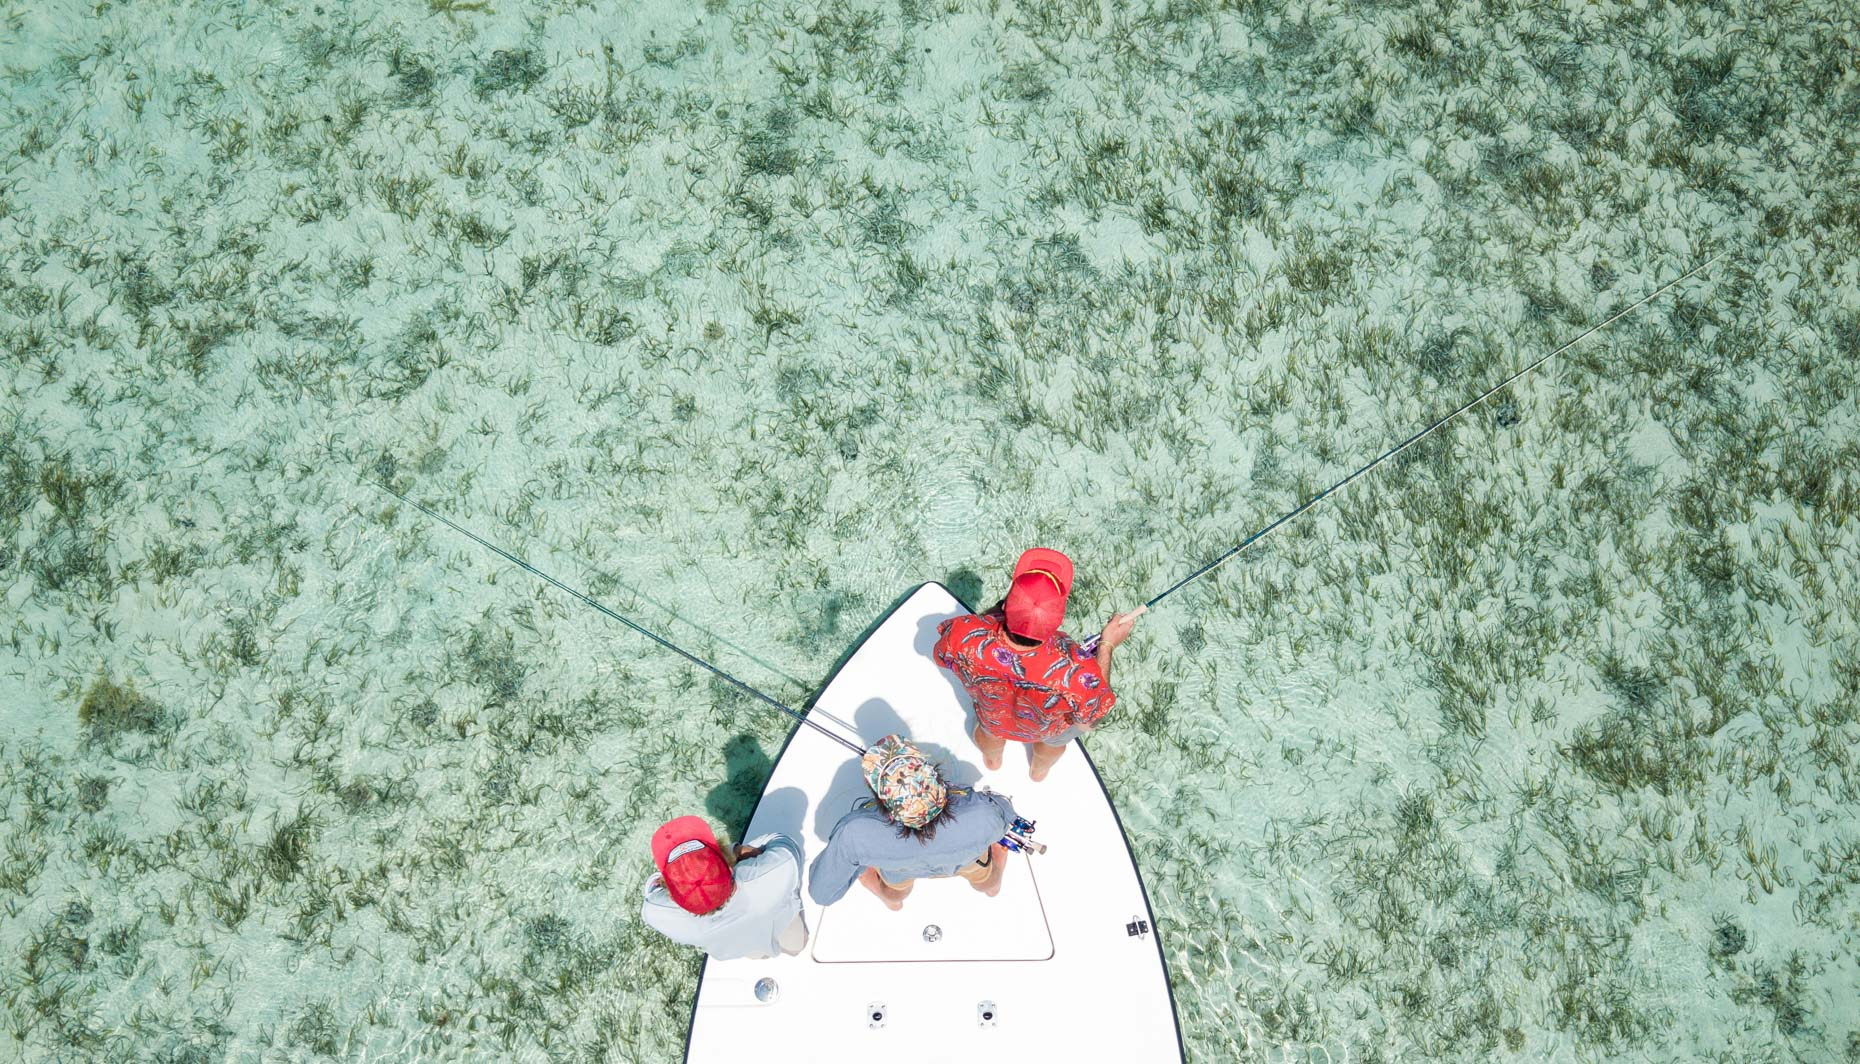 Will_Graham_Abaco_Lodge_Flyfishing-65